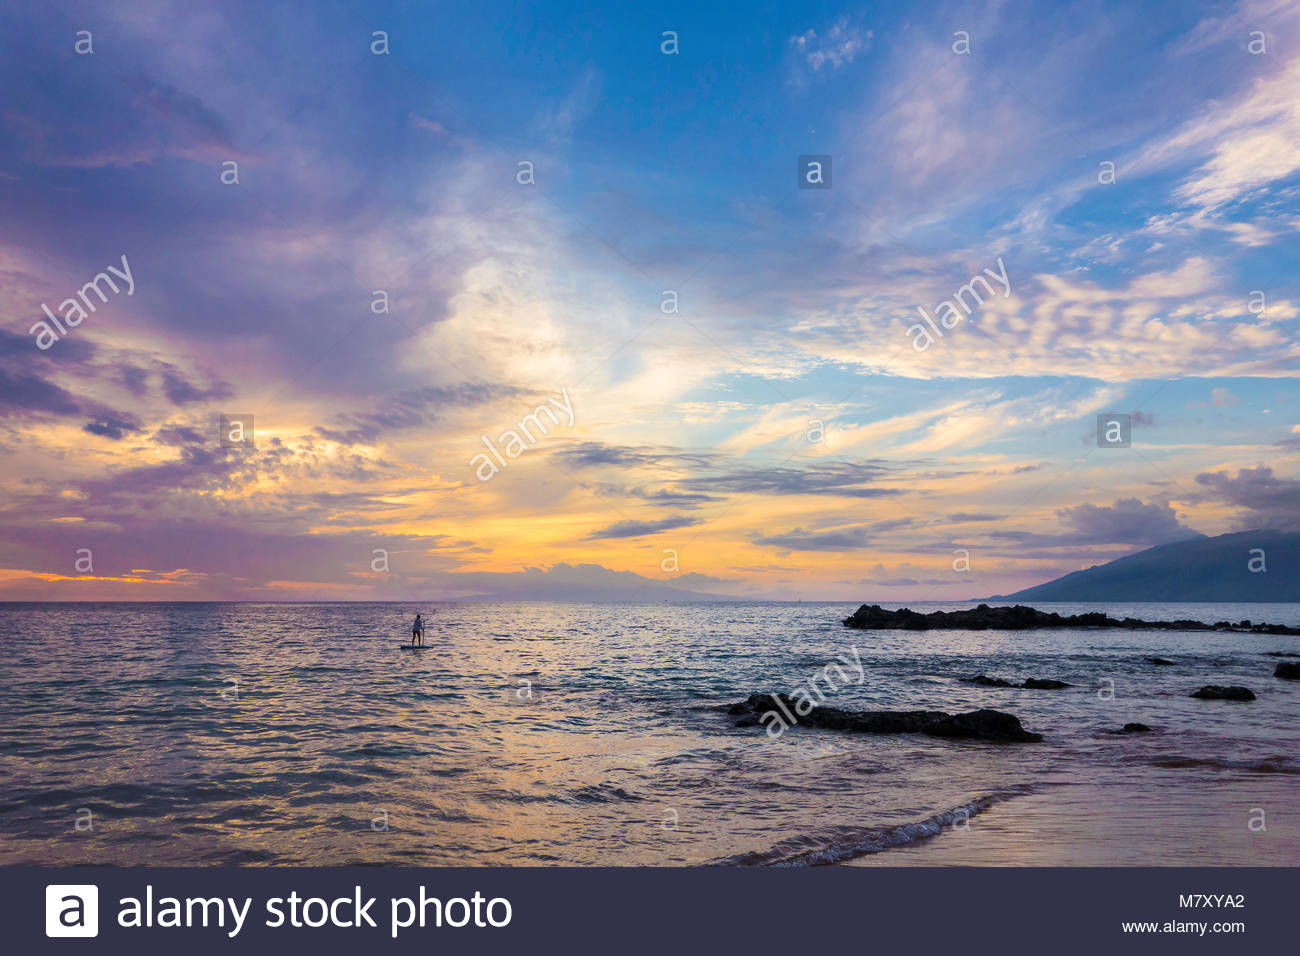 Paddleboarding and tropical sunset at Kamaole Beach Park 3 Pacific Ocean on the island of Maui in the state of Hawaii - Stock Image